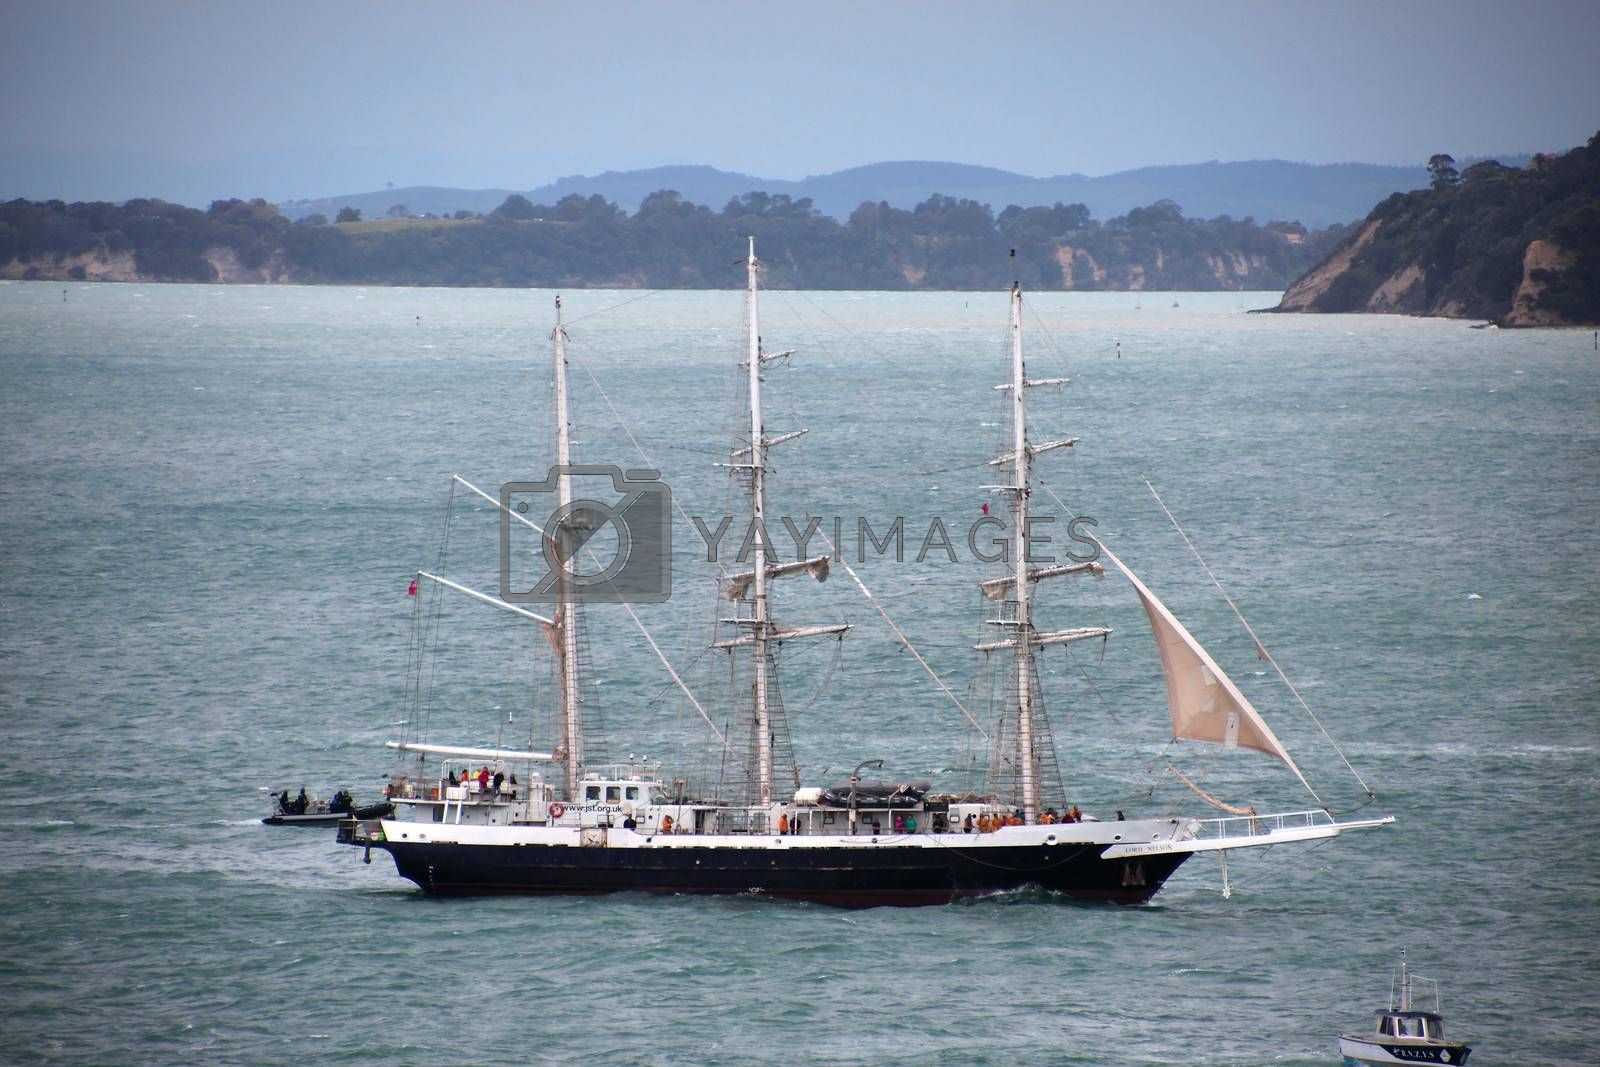 "AUCKLAND-October 25: Tall ship named ""Lord Nelson"" of the United Kingdom sailing in from Australia arriving in Waitemata Harbour in Auckland, New Zealand on  Friday October 25, 2013."